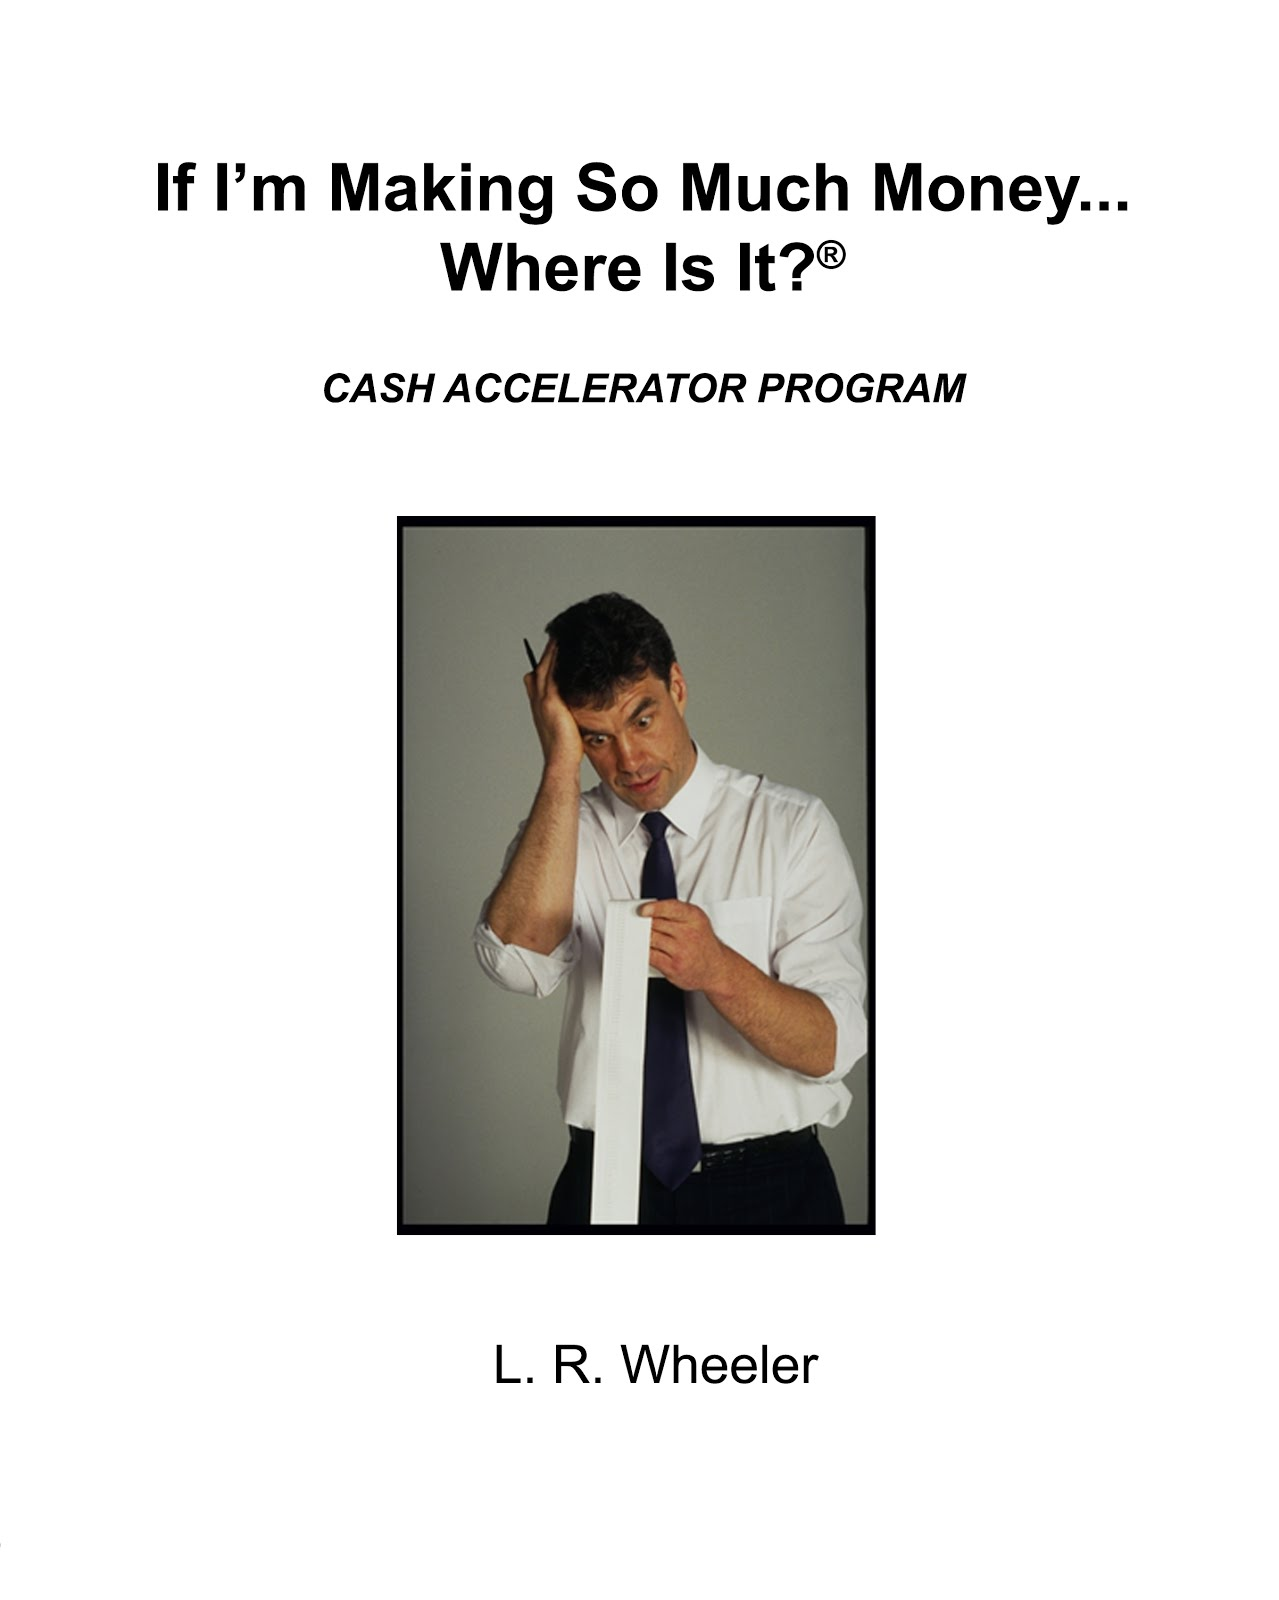 <b>If I&#39;m Making So Much Money...Where is it?</b><br>by L R Wheeler